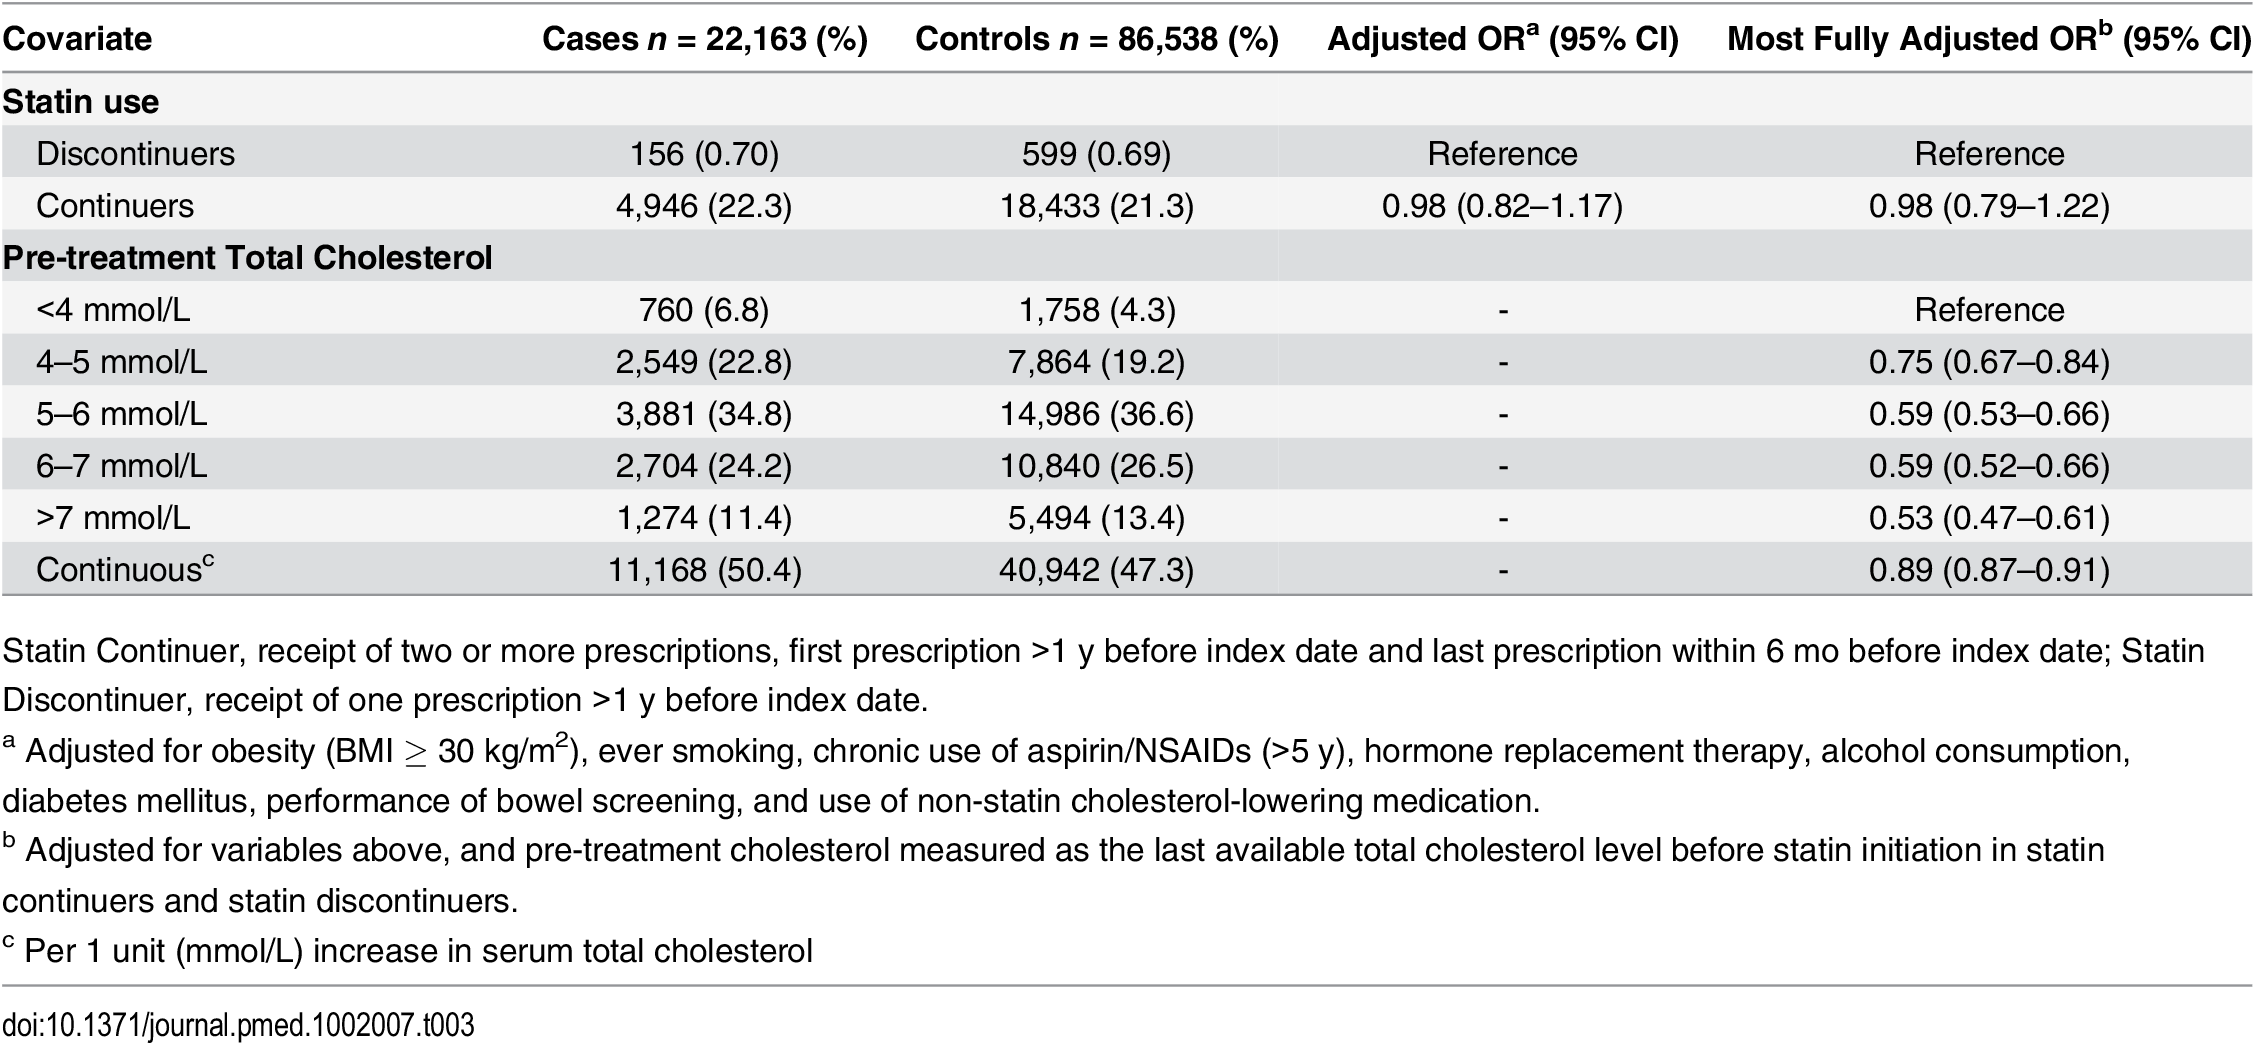 ORs for colorectal cancer risk in statin continuers relative to discontinuers, adjusting for pre-treatment total cholesterol.